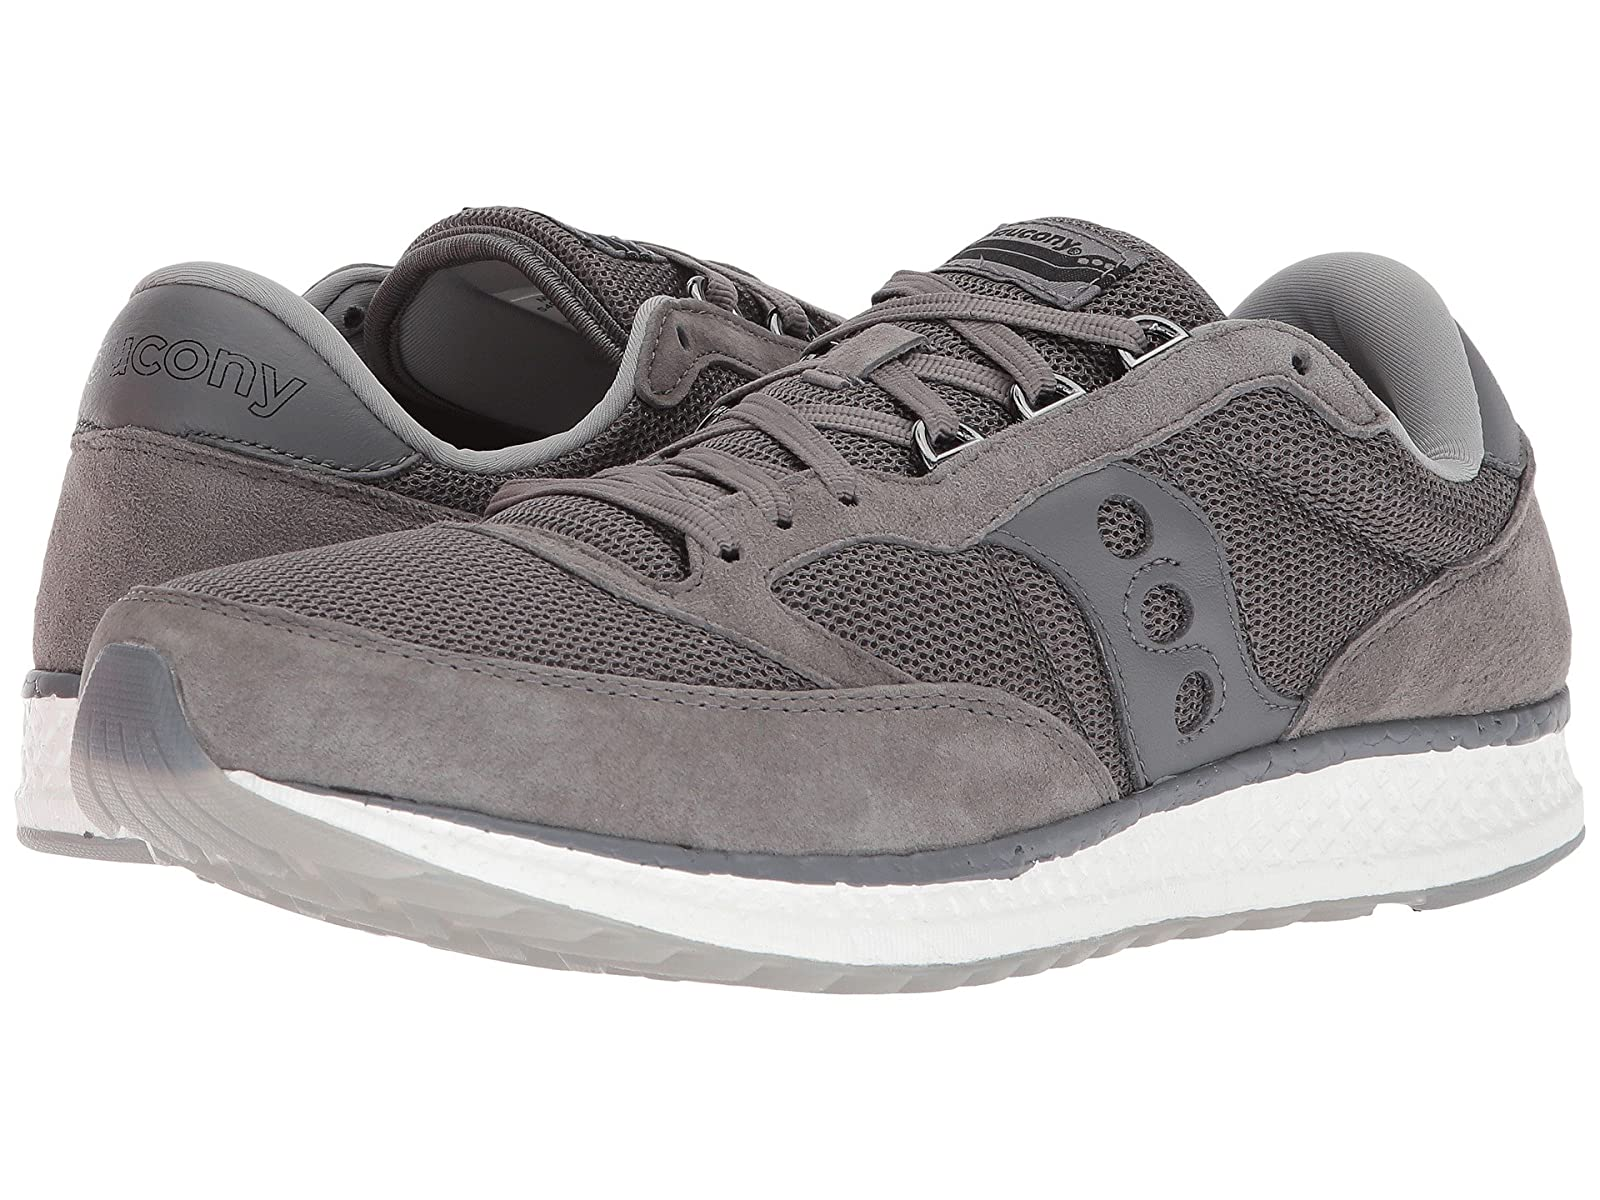 Saucony Originals Freedom Product Runner -Man's/Woman's- High Quality Product Freedom d3c361